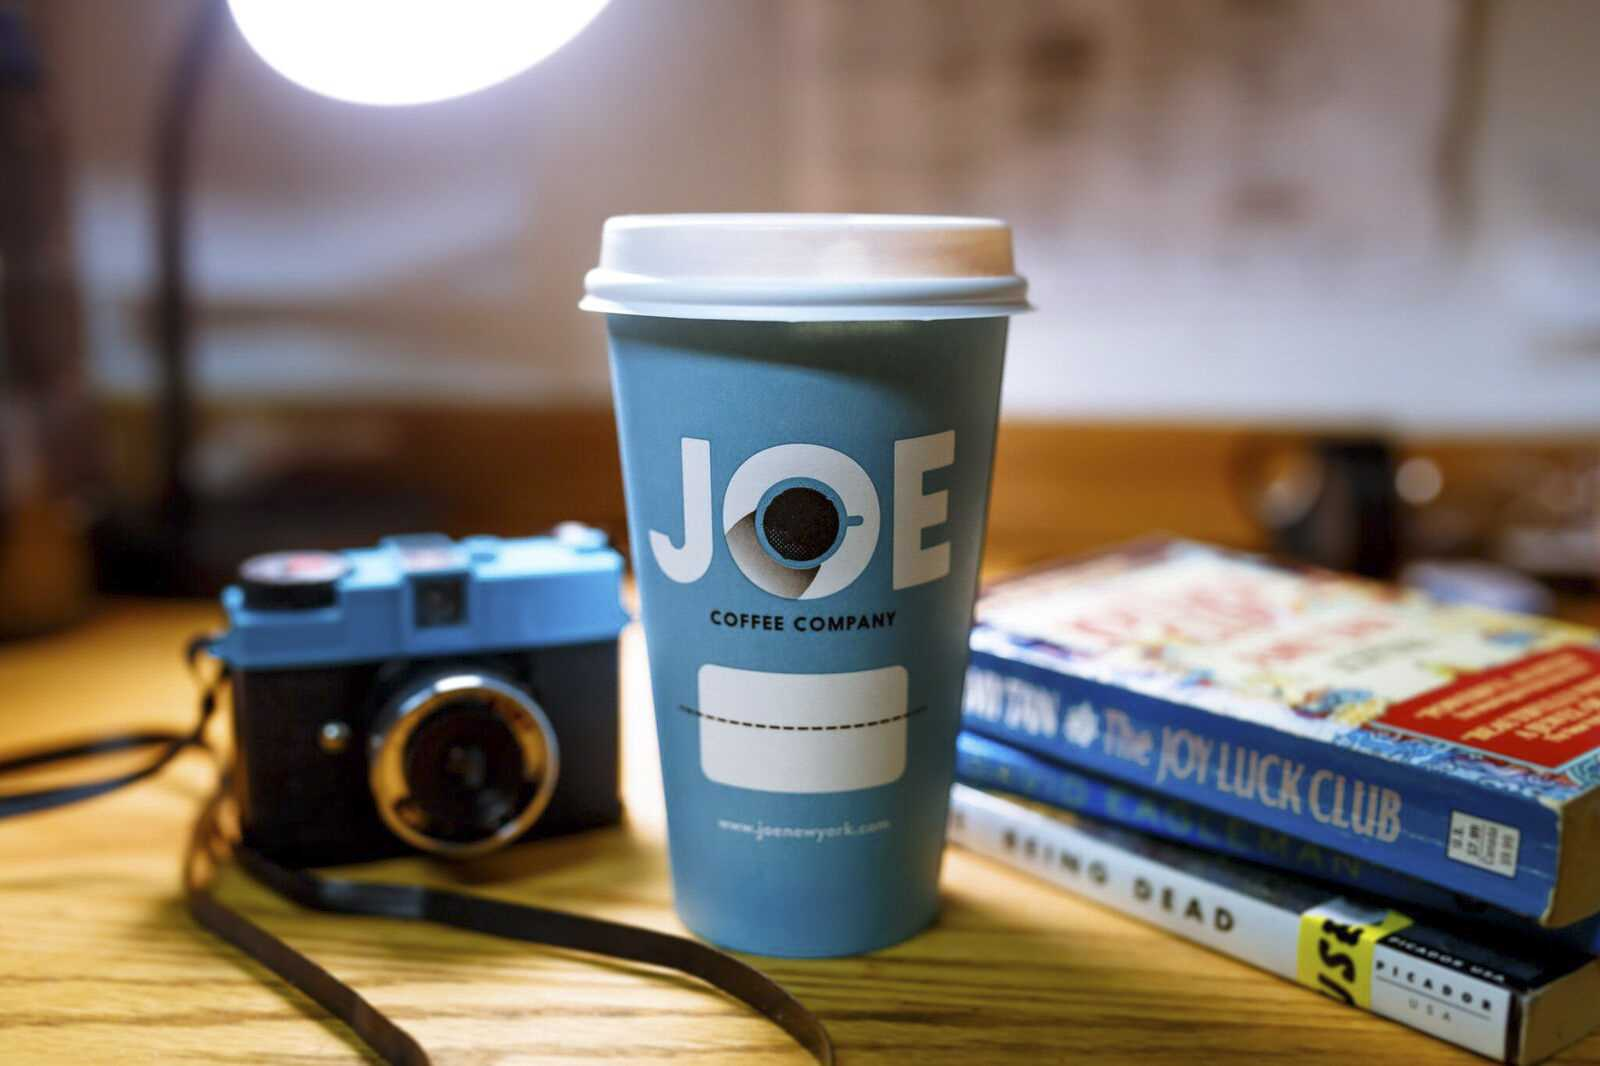 Joe Coffee on 8th Street. Coffee can be a lifesaver to a student, especially during midterm season. Here are a few great coffee shops on campus that can substitute for the usual Starbucks.